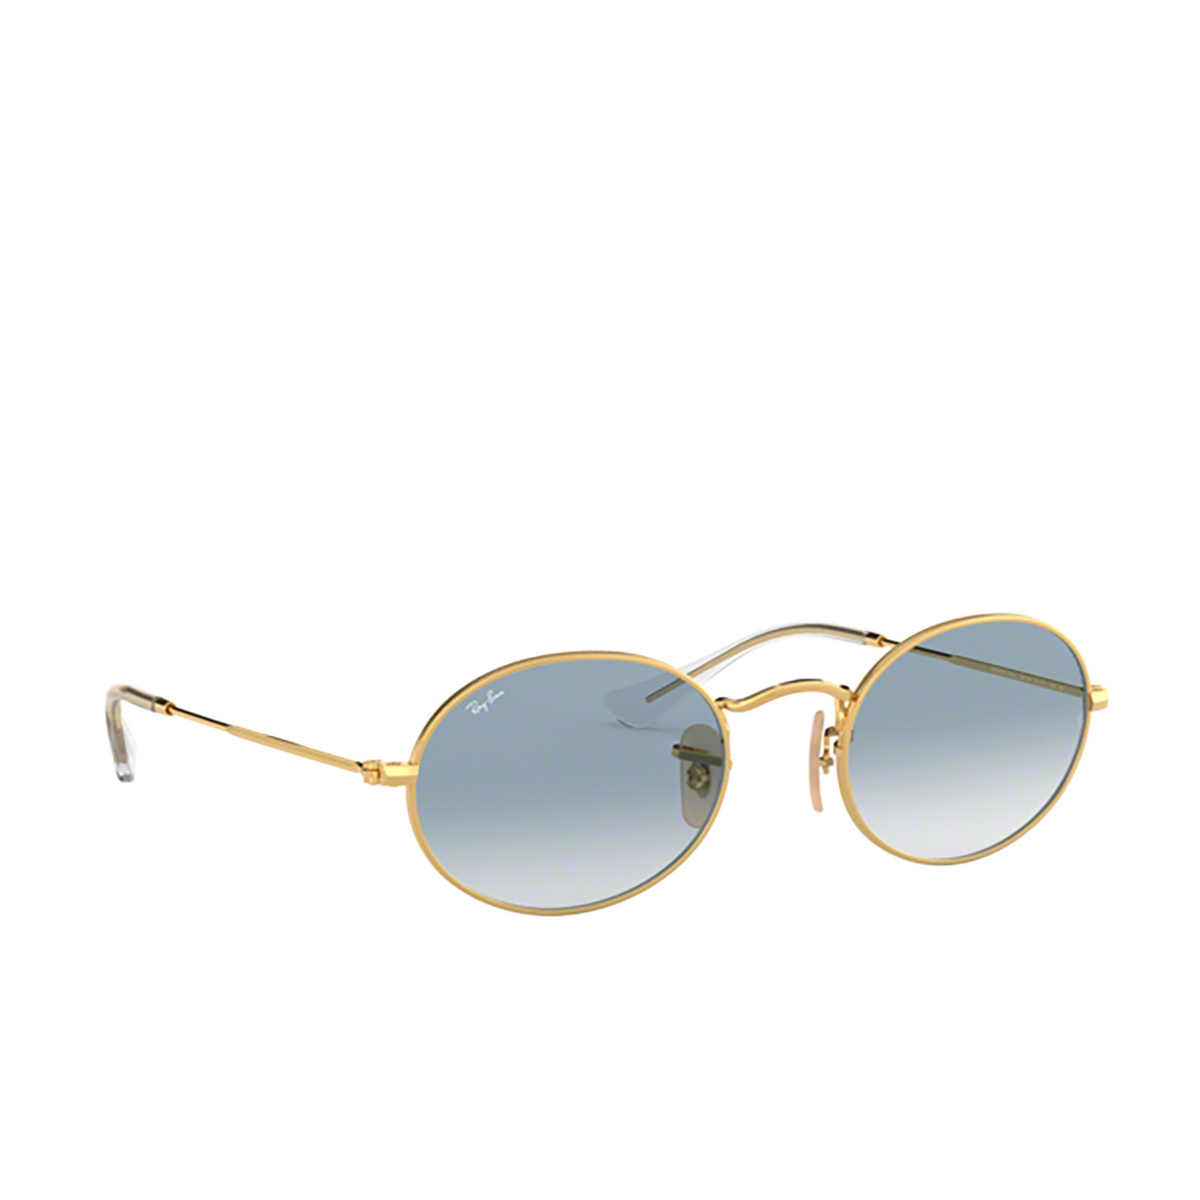 Ray-Ban® Oval Sunglasses: Oval RB3547N color Arista 001/3F.